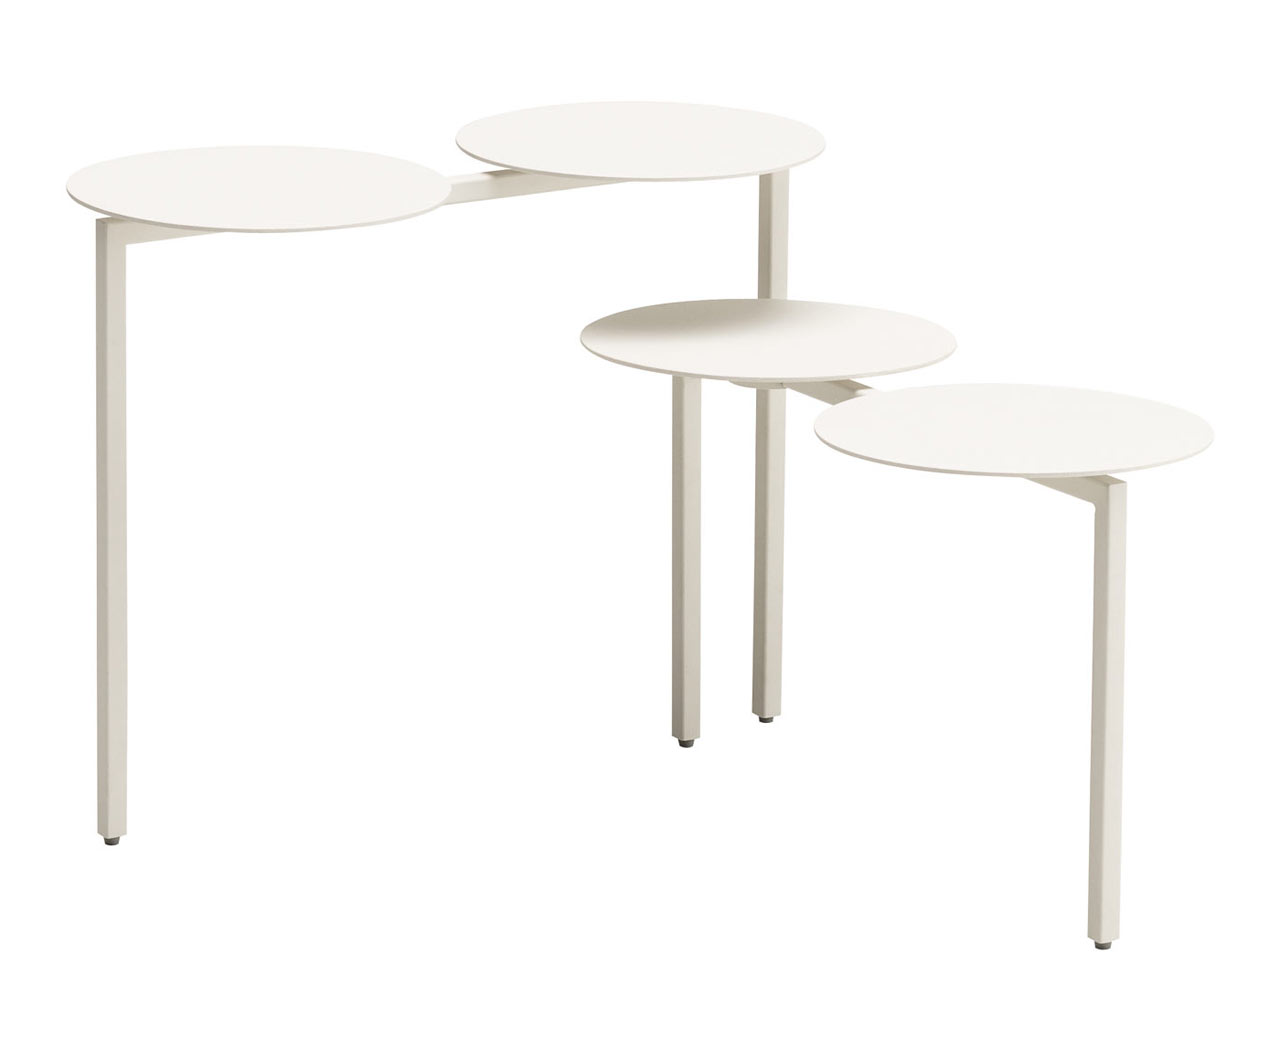 nendo-boconcept-oki-sato-collaboration-table